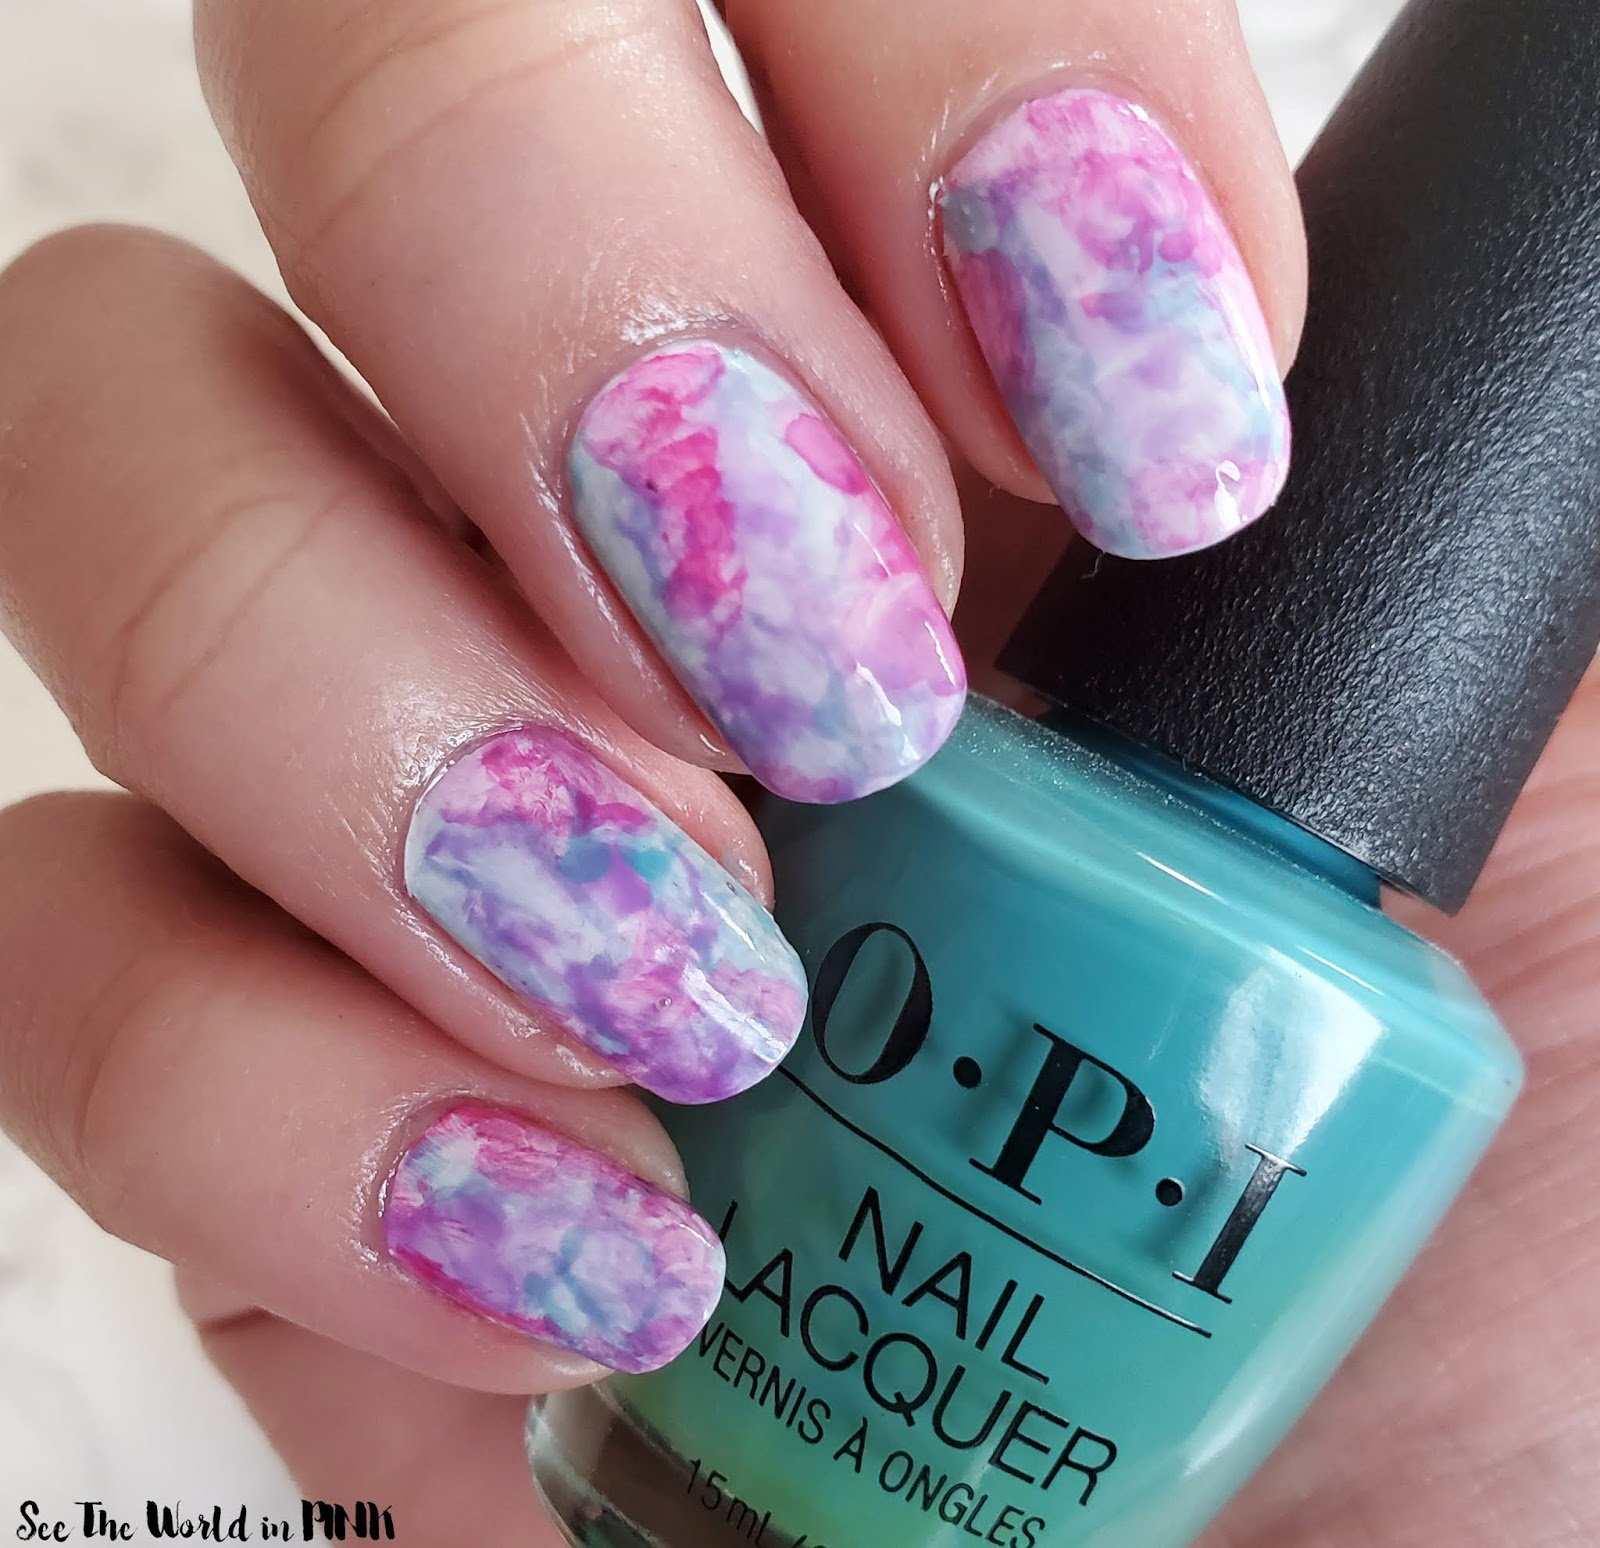 Manicure Monday - Watercolour Nail Art